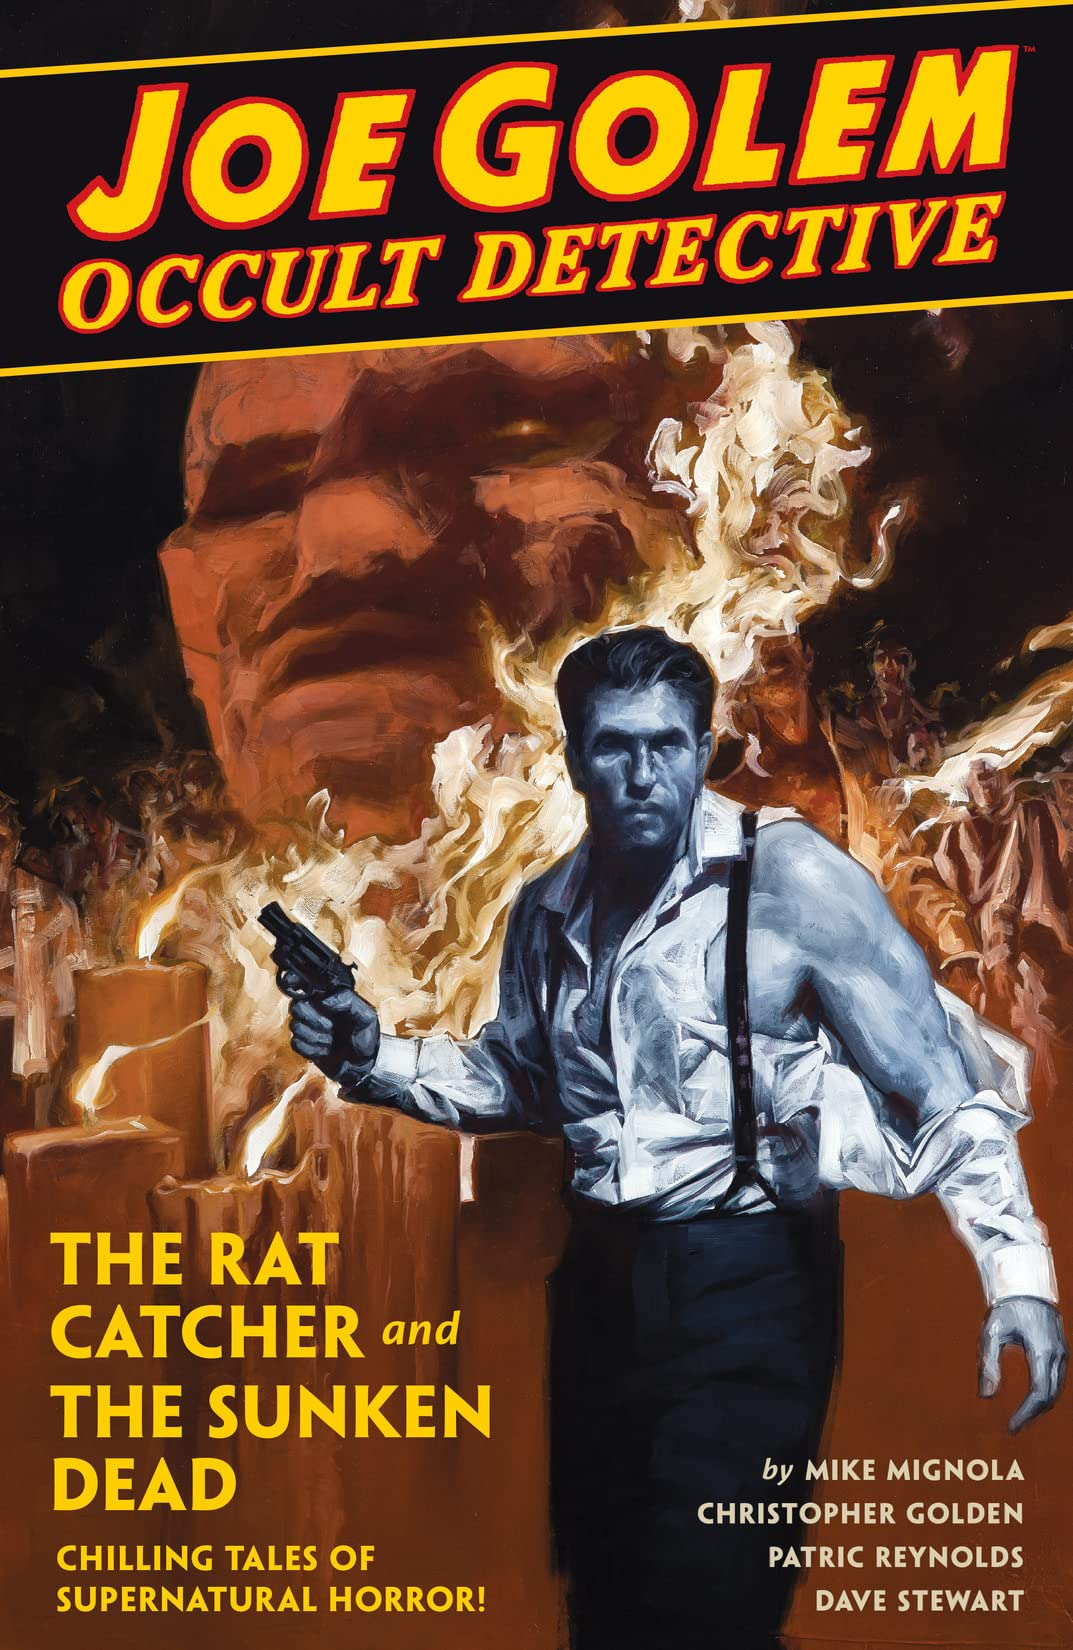 Joe Golem: Occult Detective, Vol. 1: The Rat Catcher and the Sunken Dead